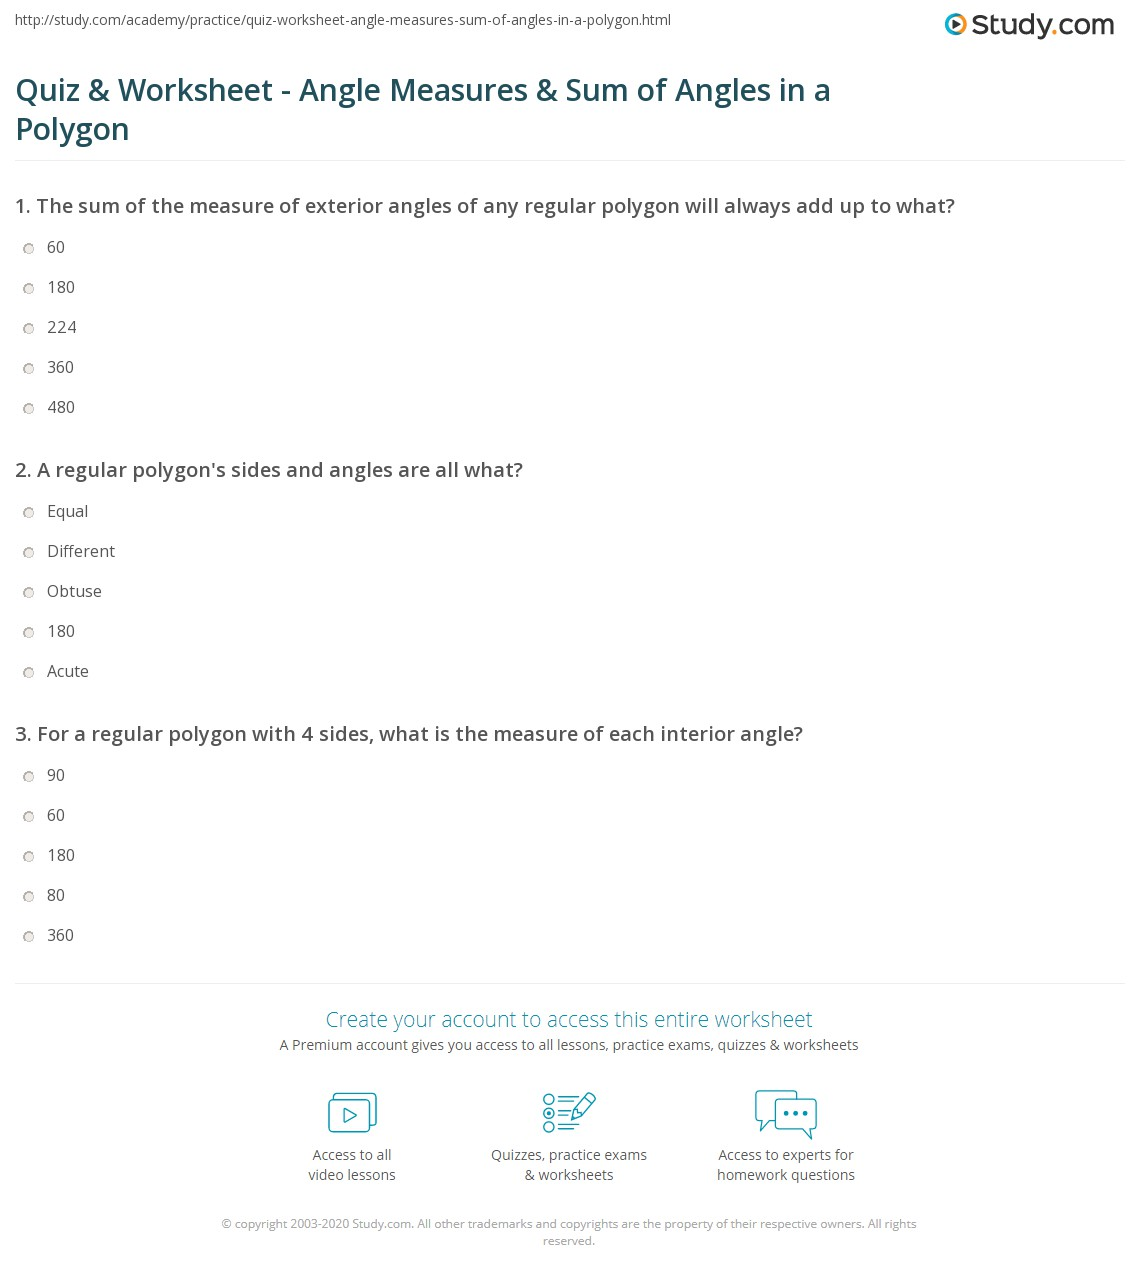 Quiz Worksheet Angle Measures Sum of Angles in a Polygon